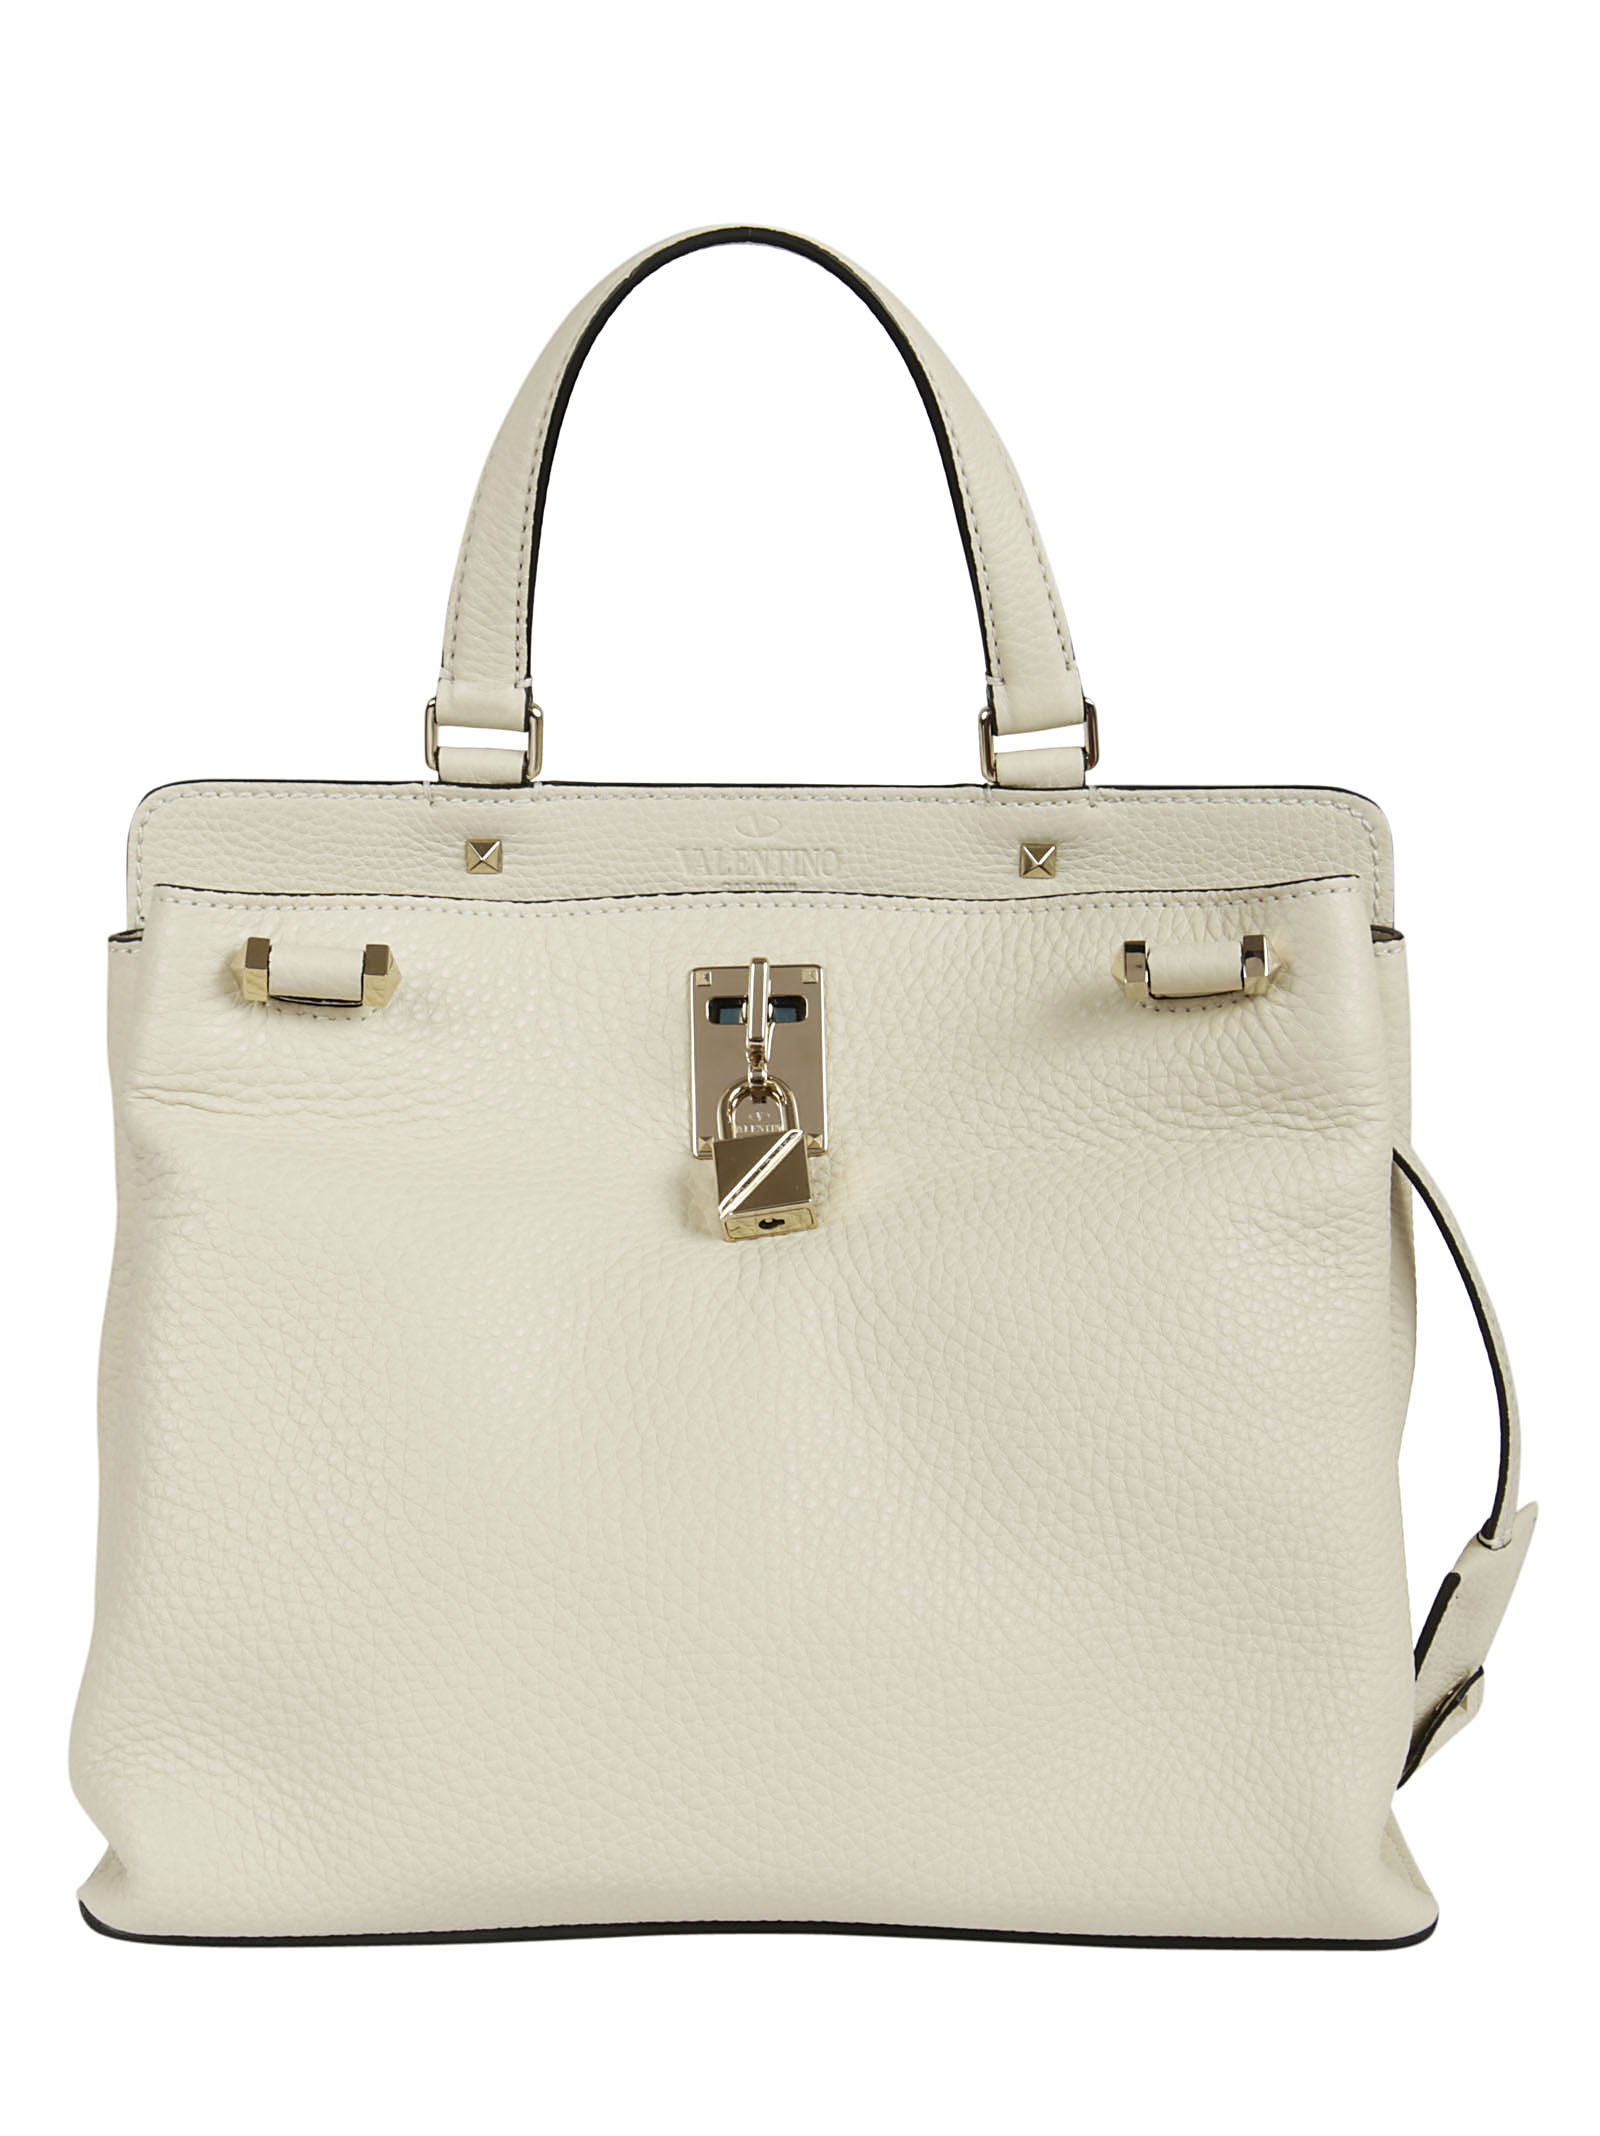 Valentino Garavani DOUBLE HANDLE BAG